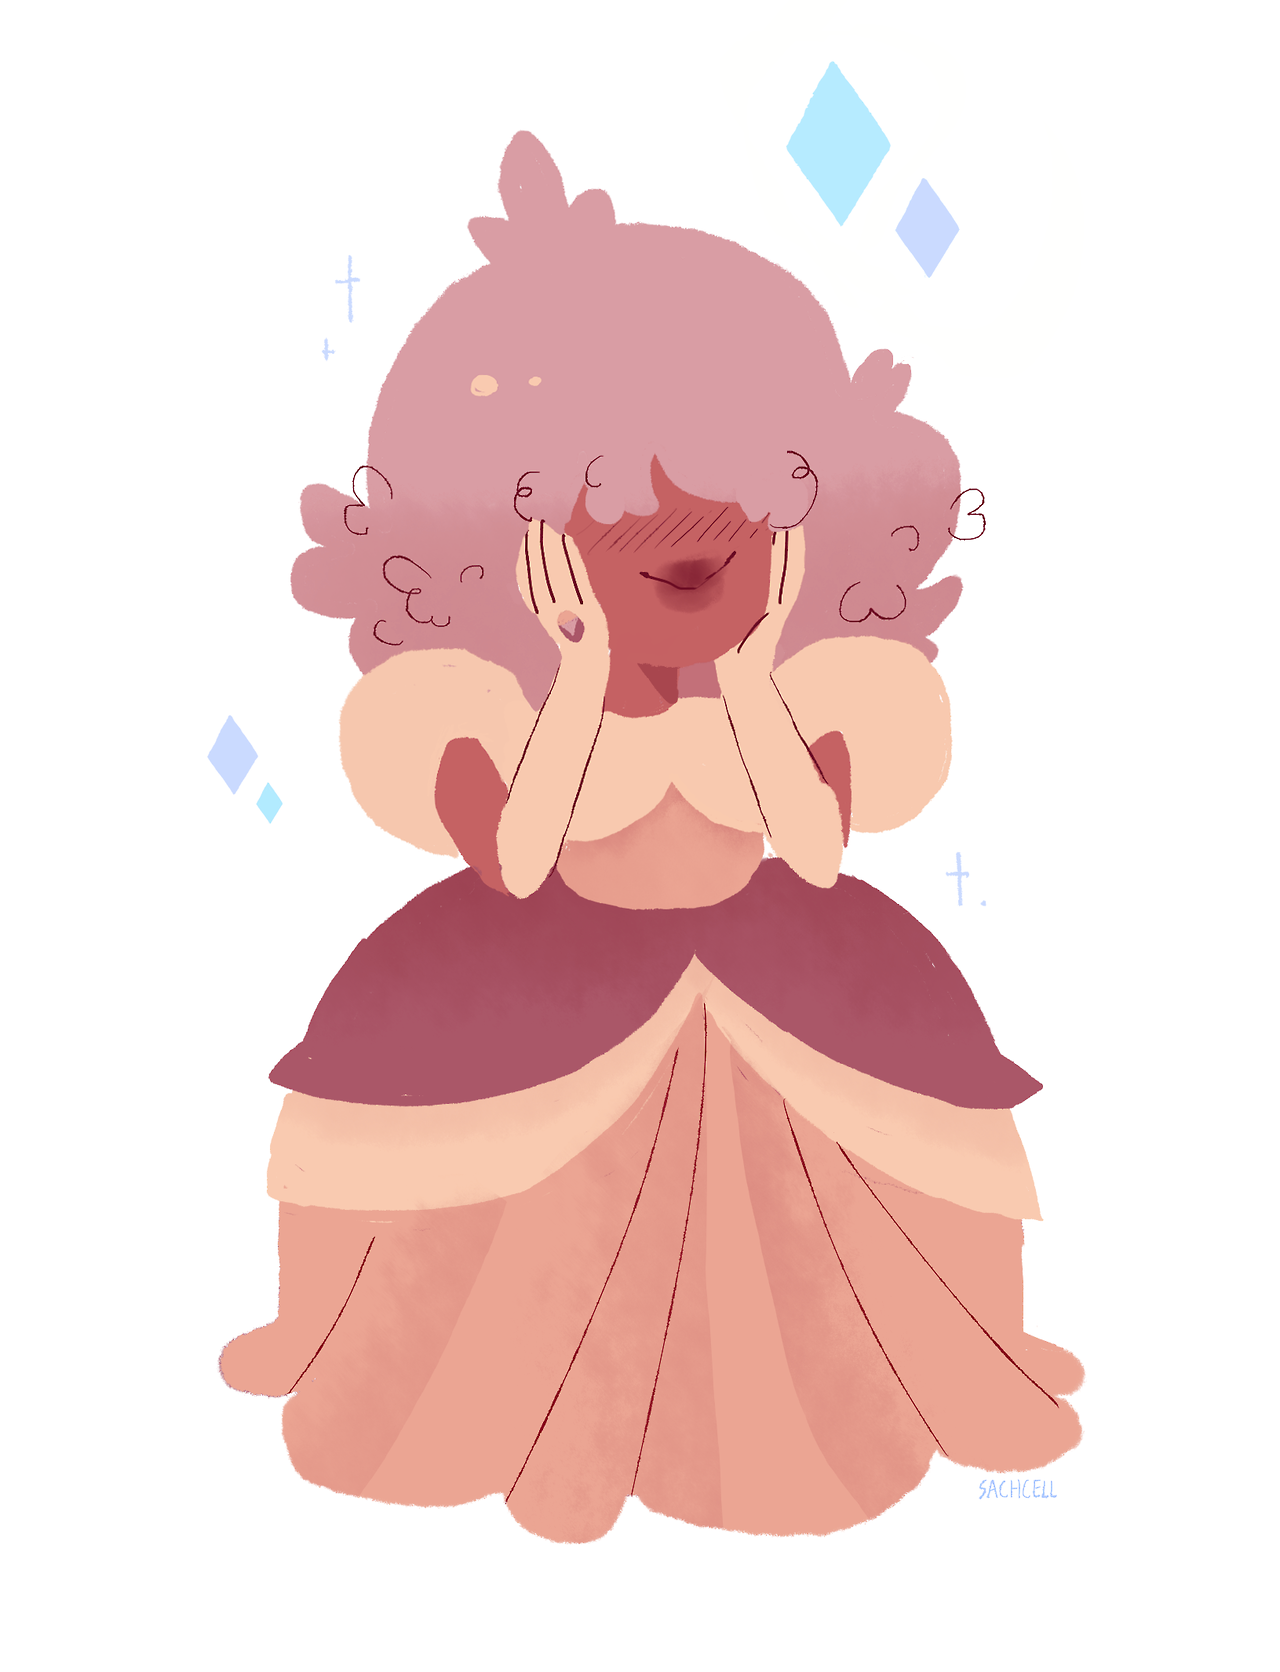 Padparadscha predicts u are doing great and you are a strong & wonderful person!